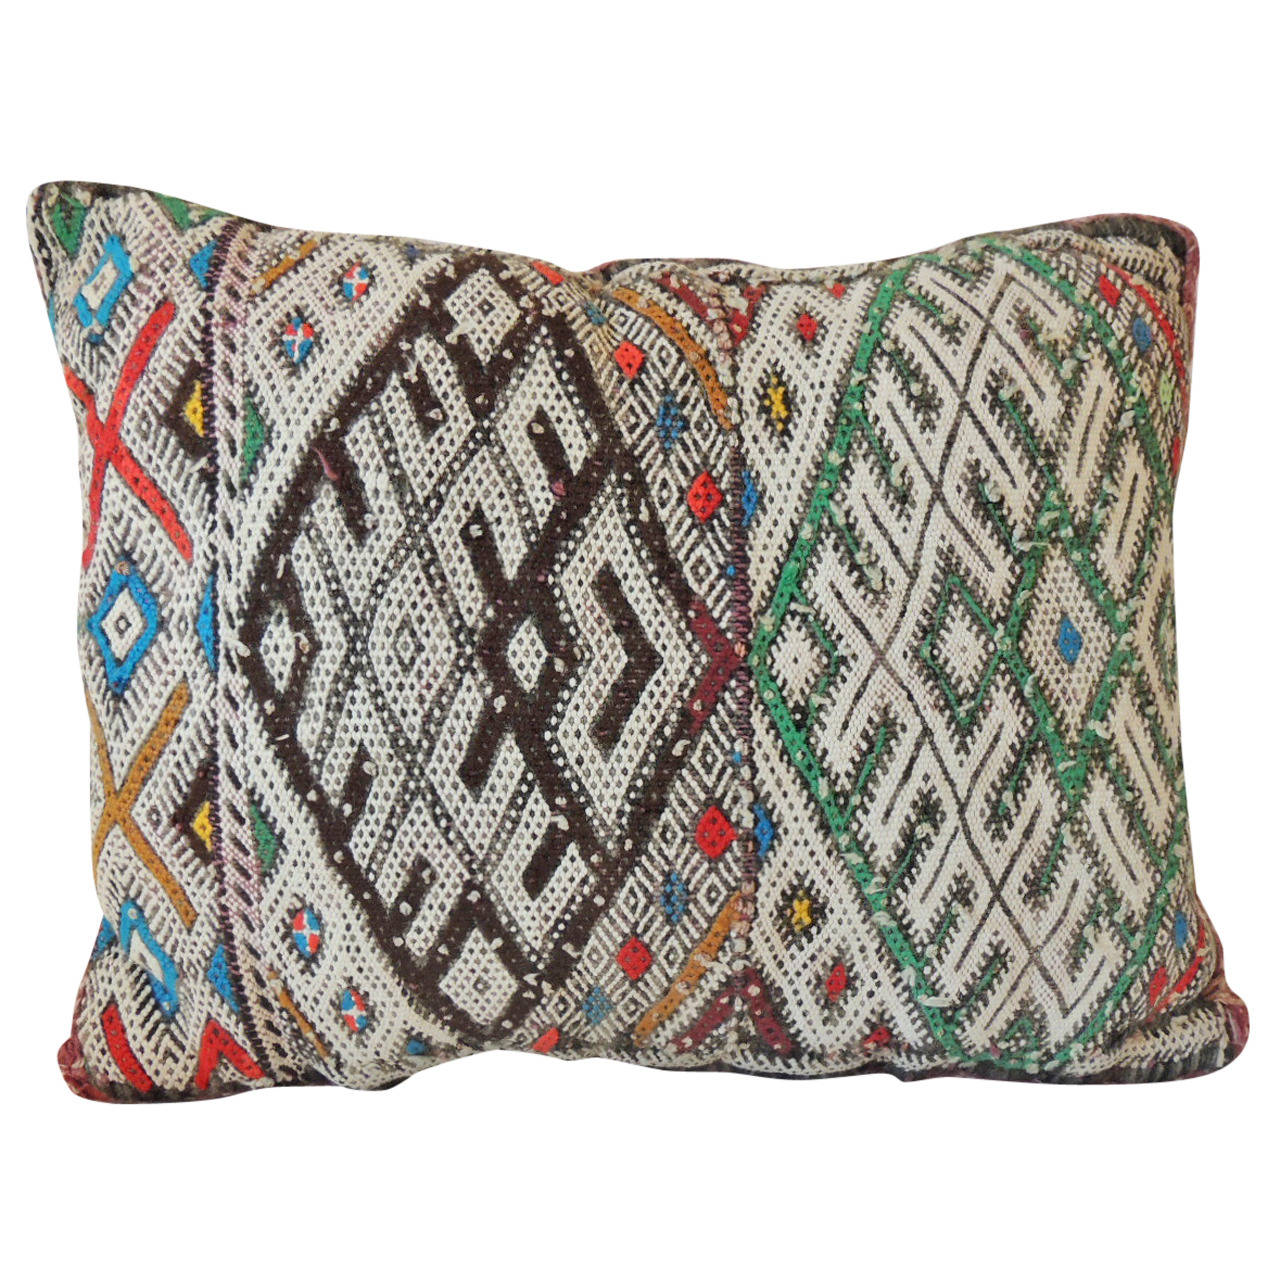 Throw Pillows Malum : Vintage Moroccan Pillow. at 1stdibs